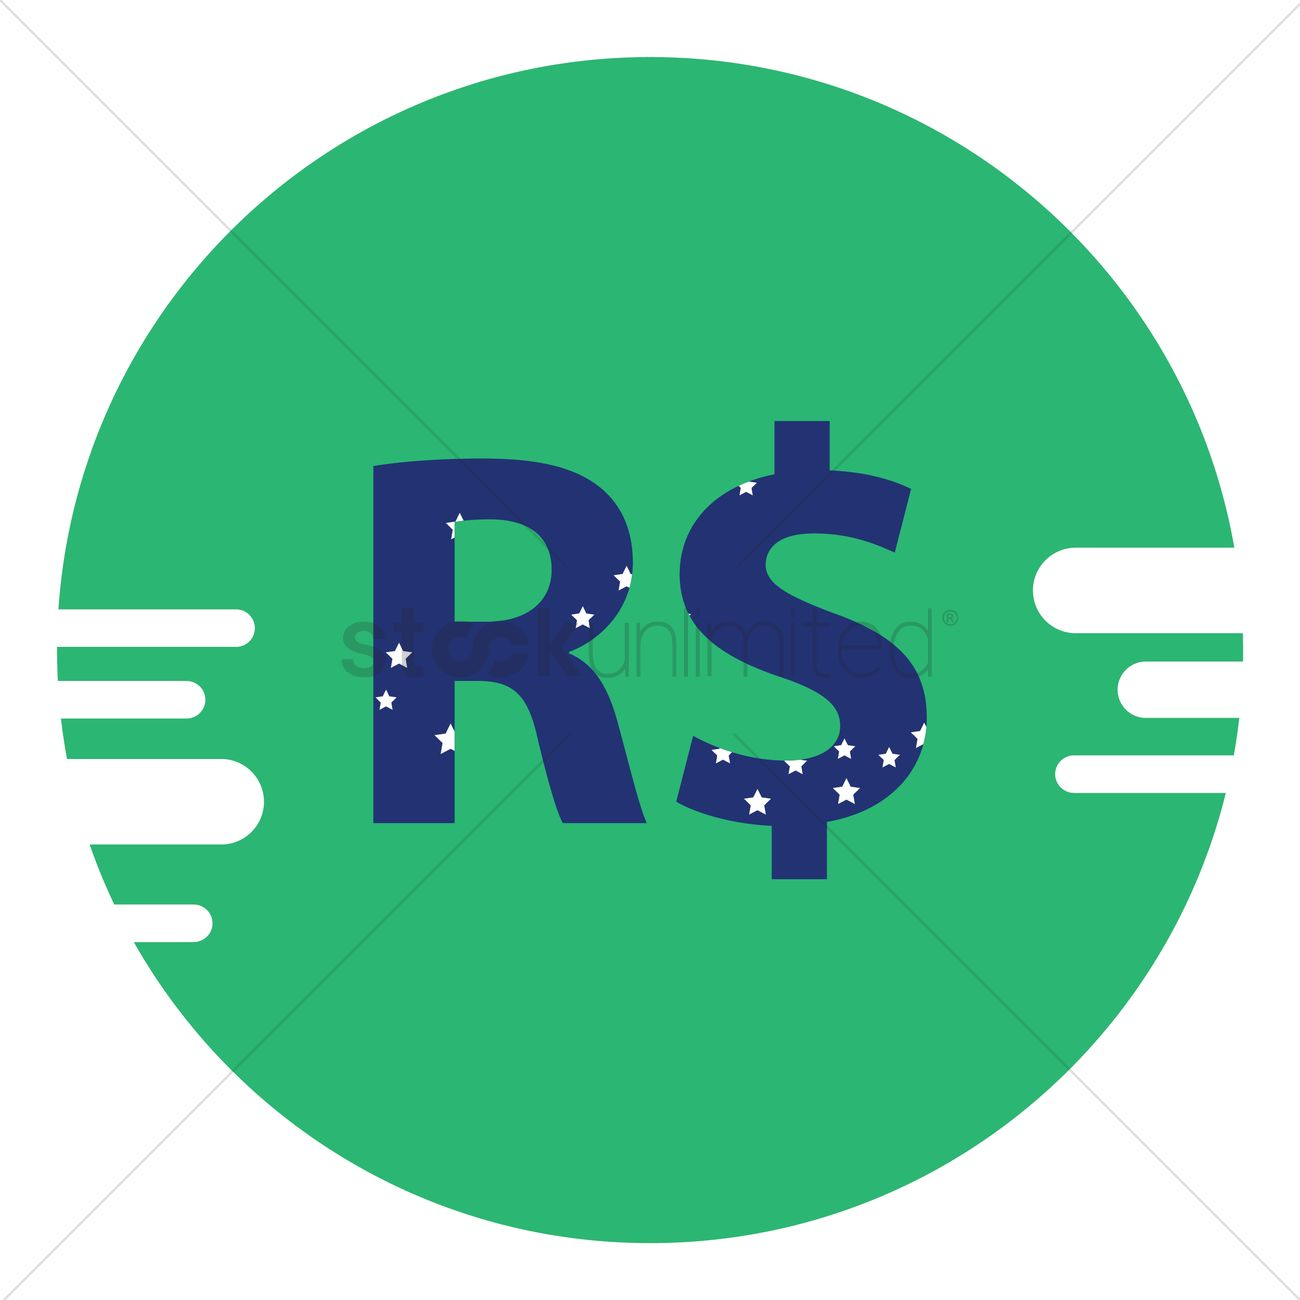 Brazilian real symbol vector image 1572790 stockunlimited brazilian real symbol vector graphic biocorpaavc Image collections